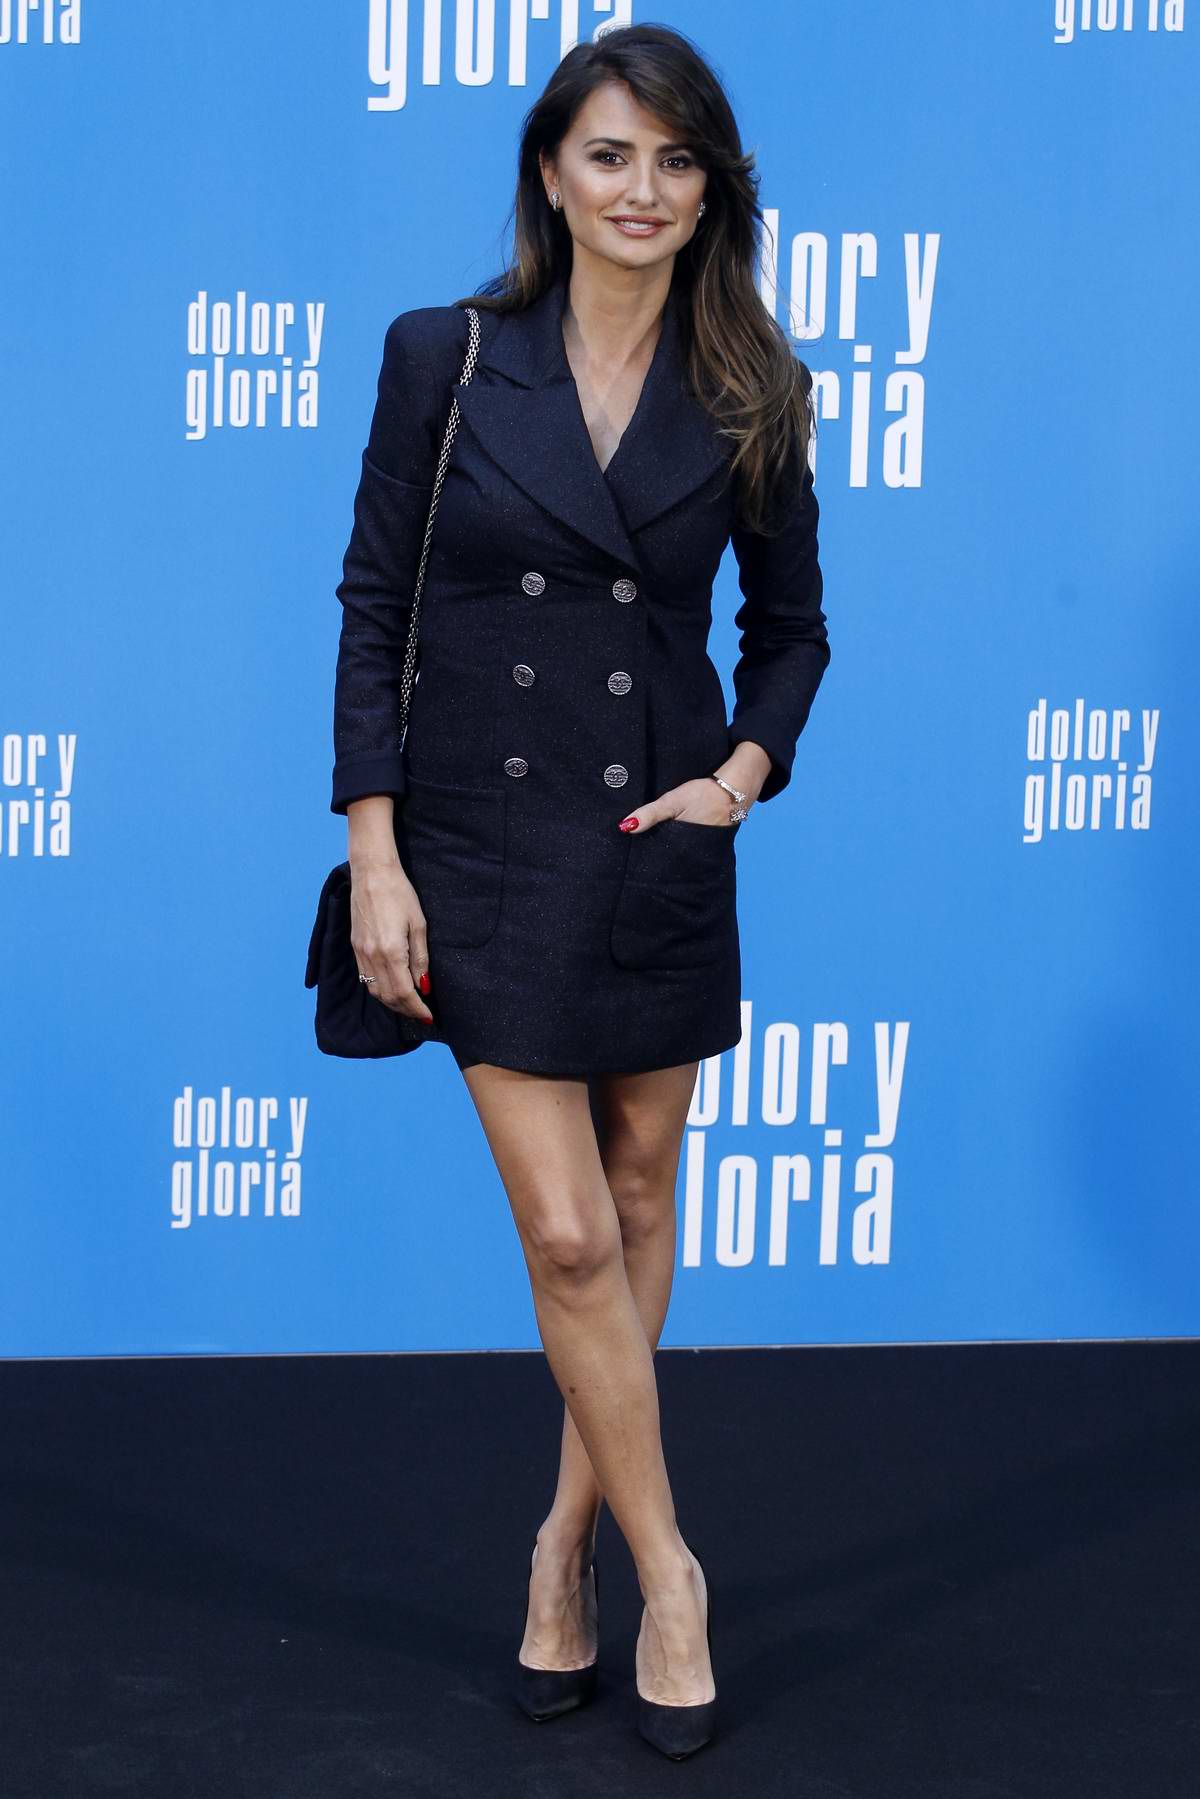 Penelope Cruz attends 'Dolor y Gloria' (Pain And Glory) photocall in Madrid, Spain